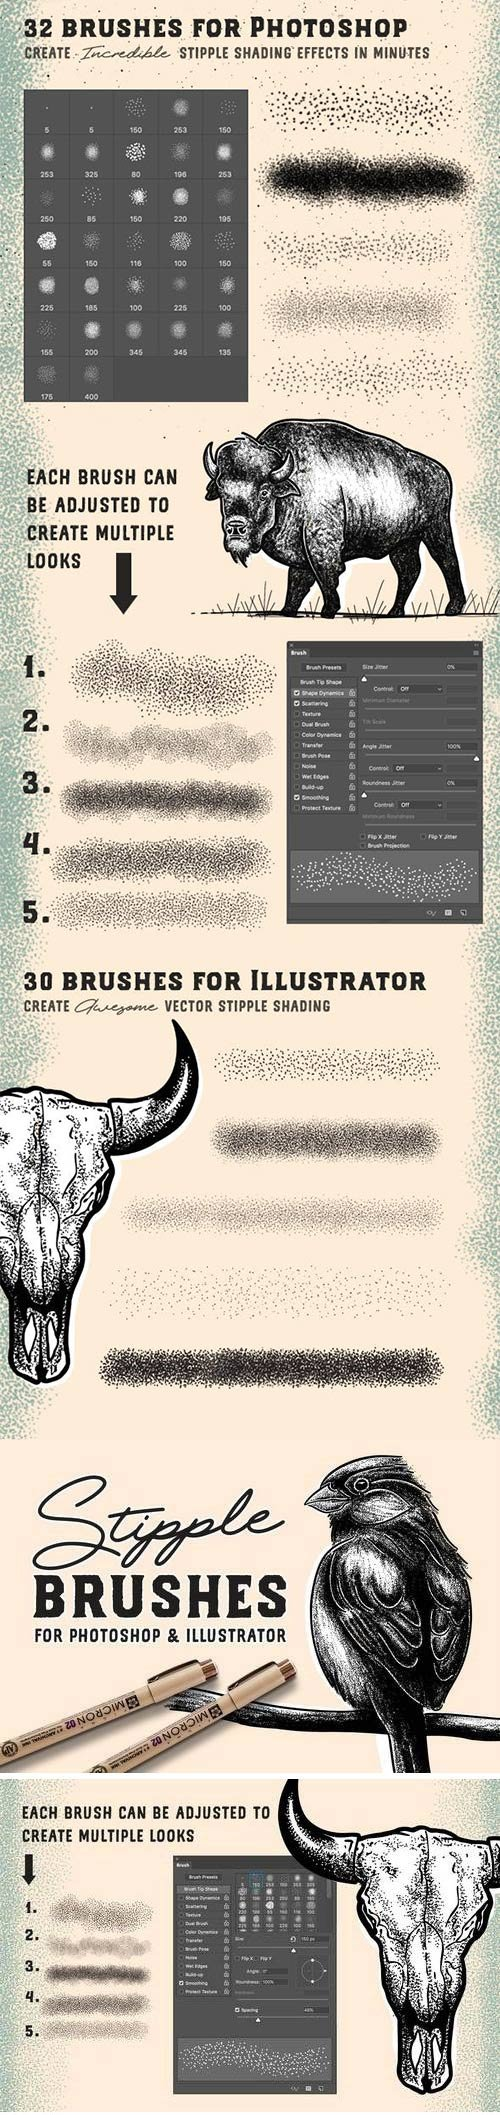 Graphicriver - Stipple Brush Set for Photoshop and Illustrator 22685917